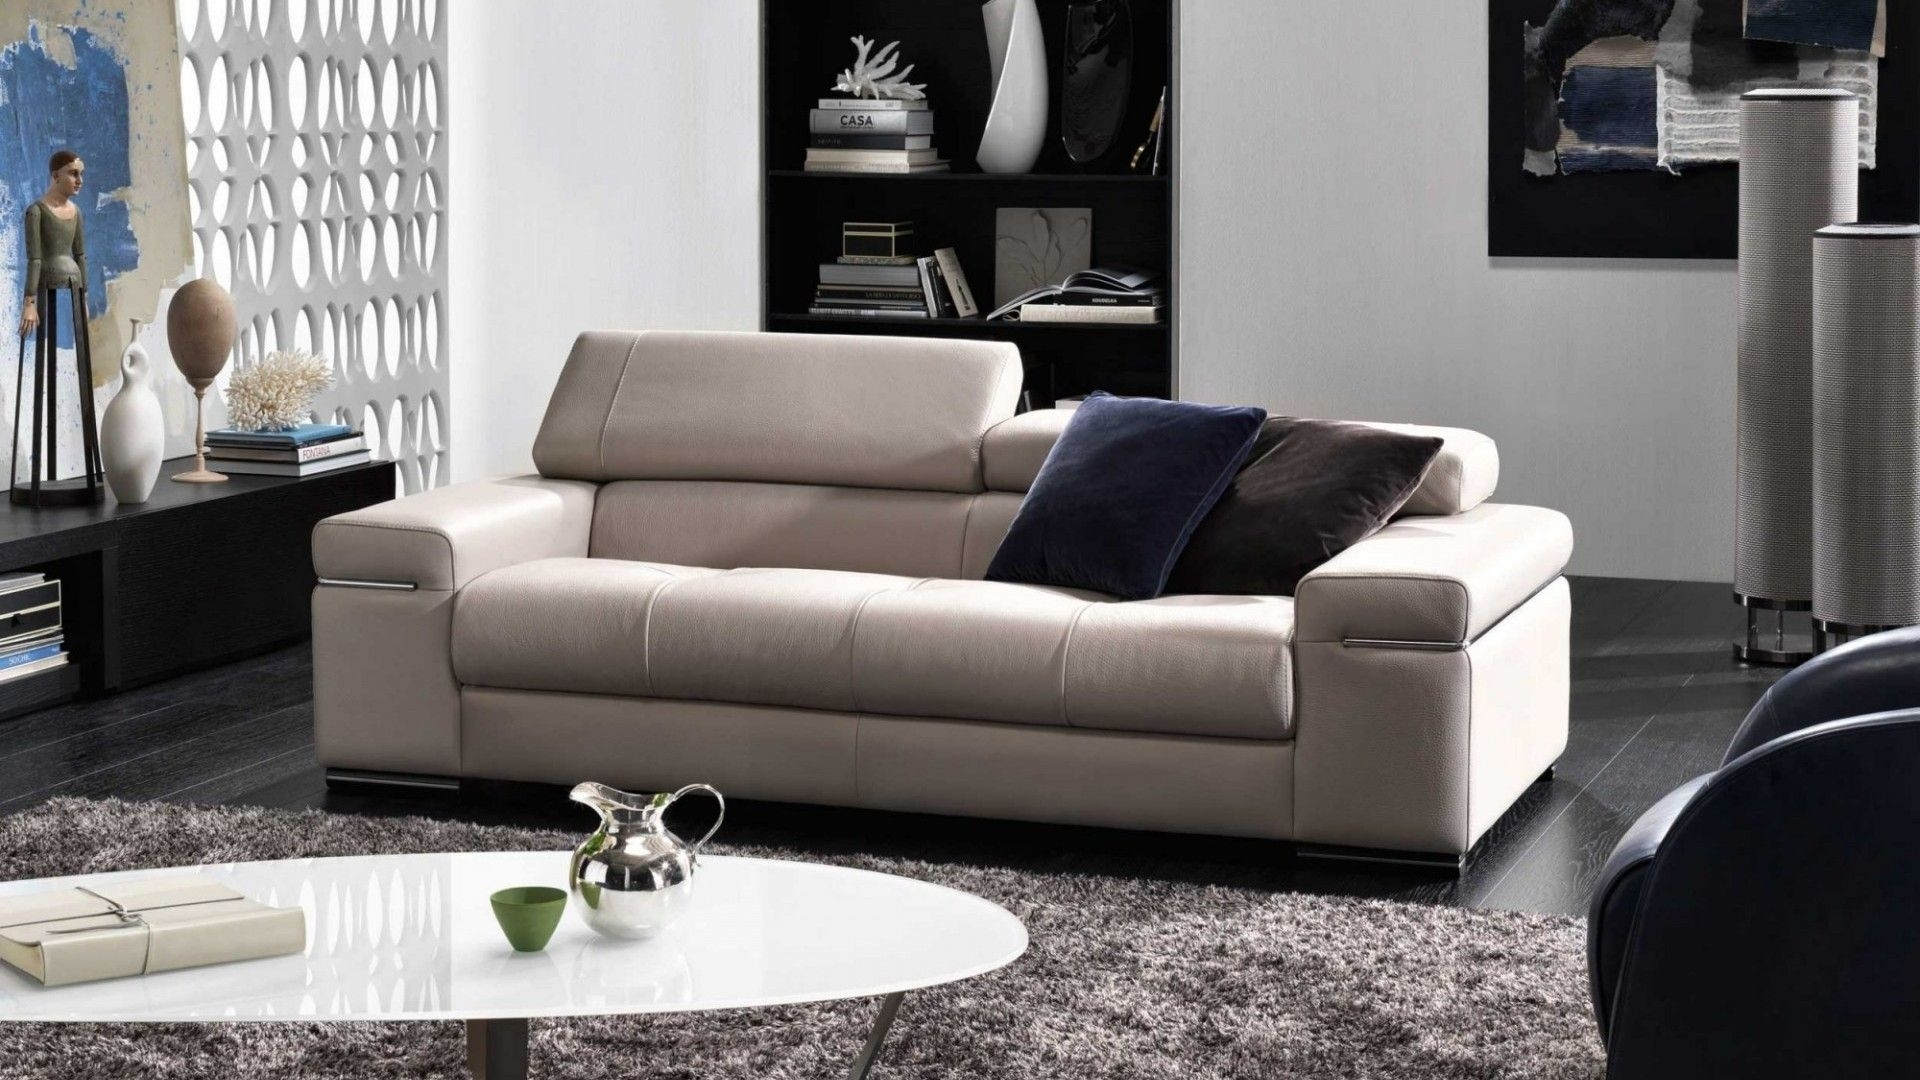 Natuzzi Italia Leather Avana Sofa – Natuzzi Italia Philadelphia Pertaining To Philadelphia Sectional Sofas (Image 4 of 10)